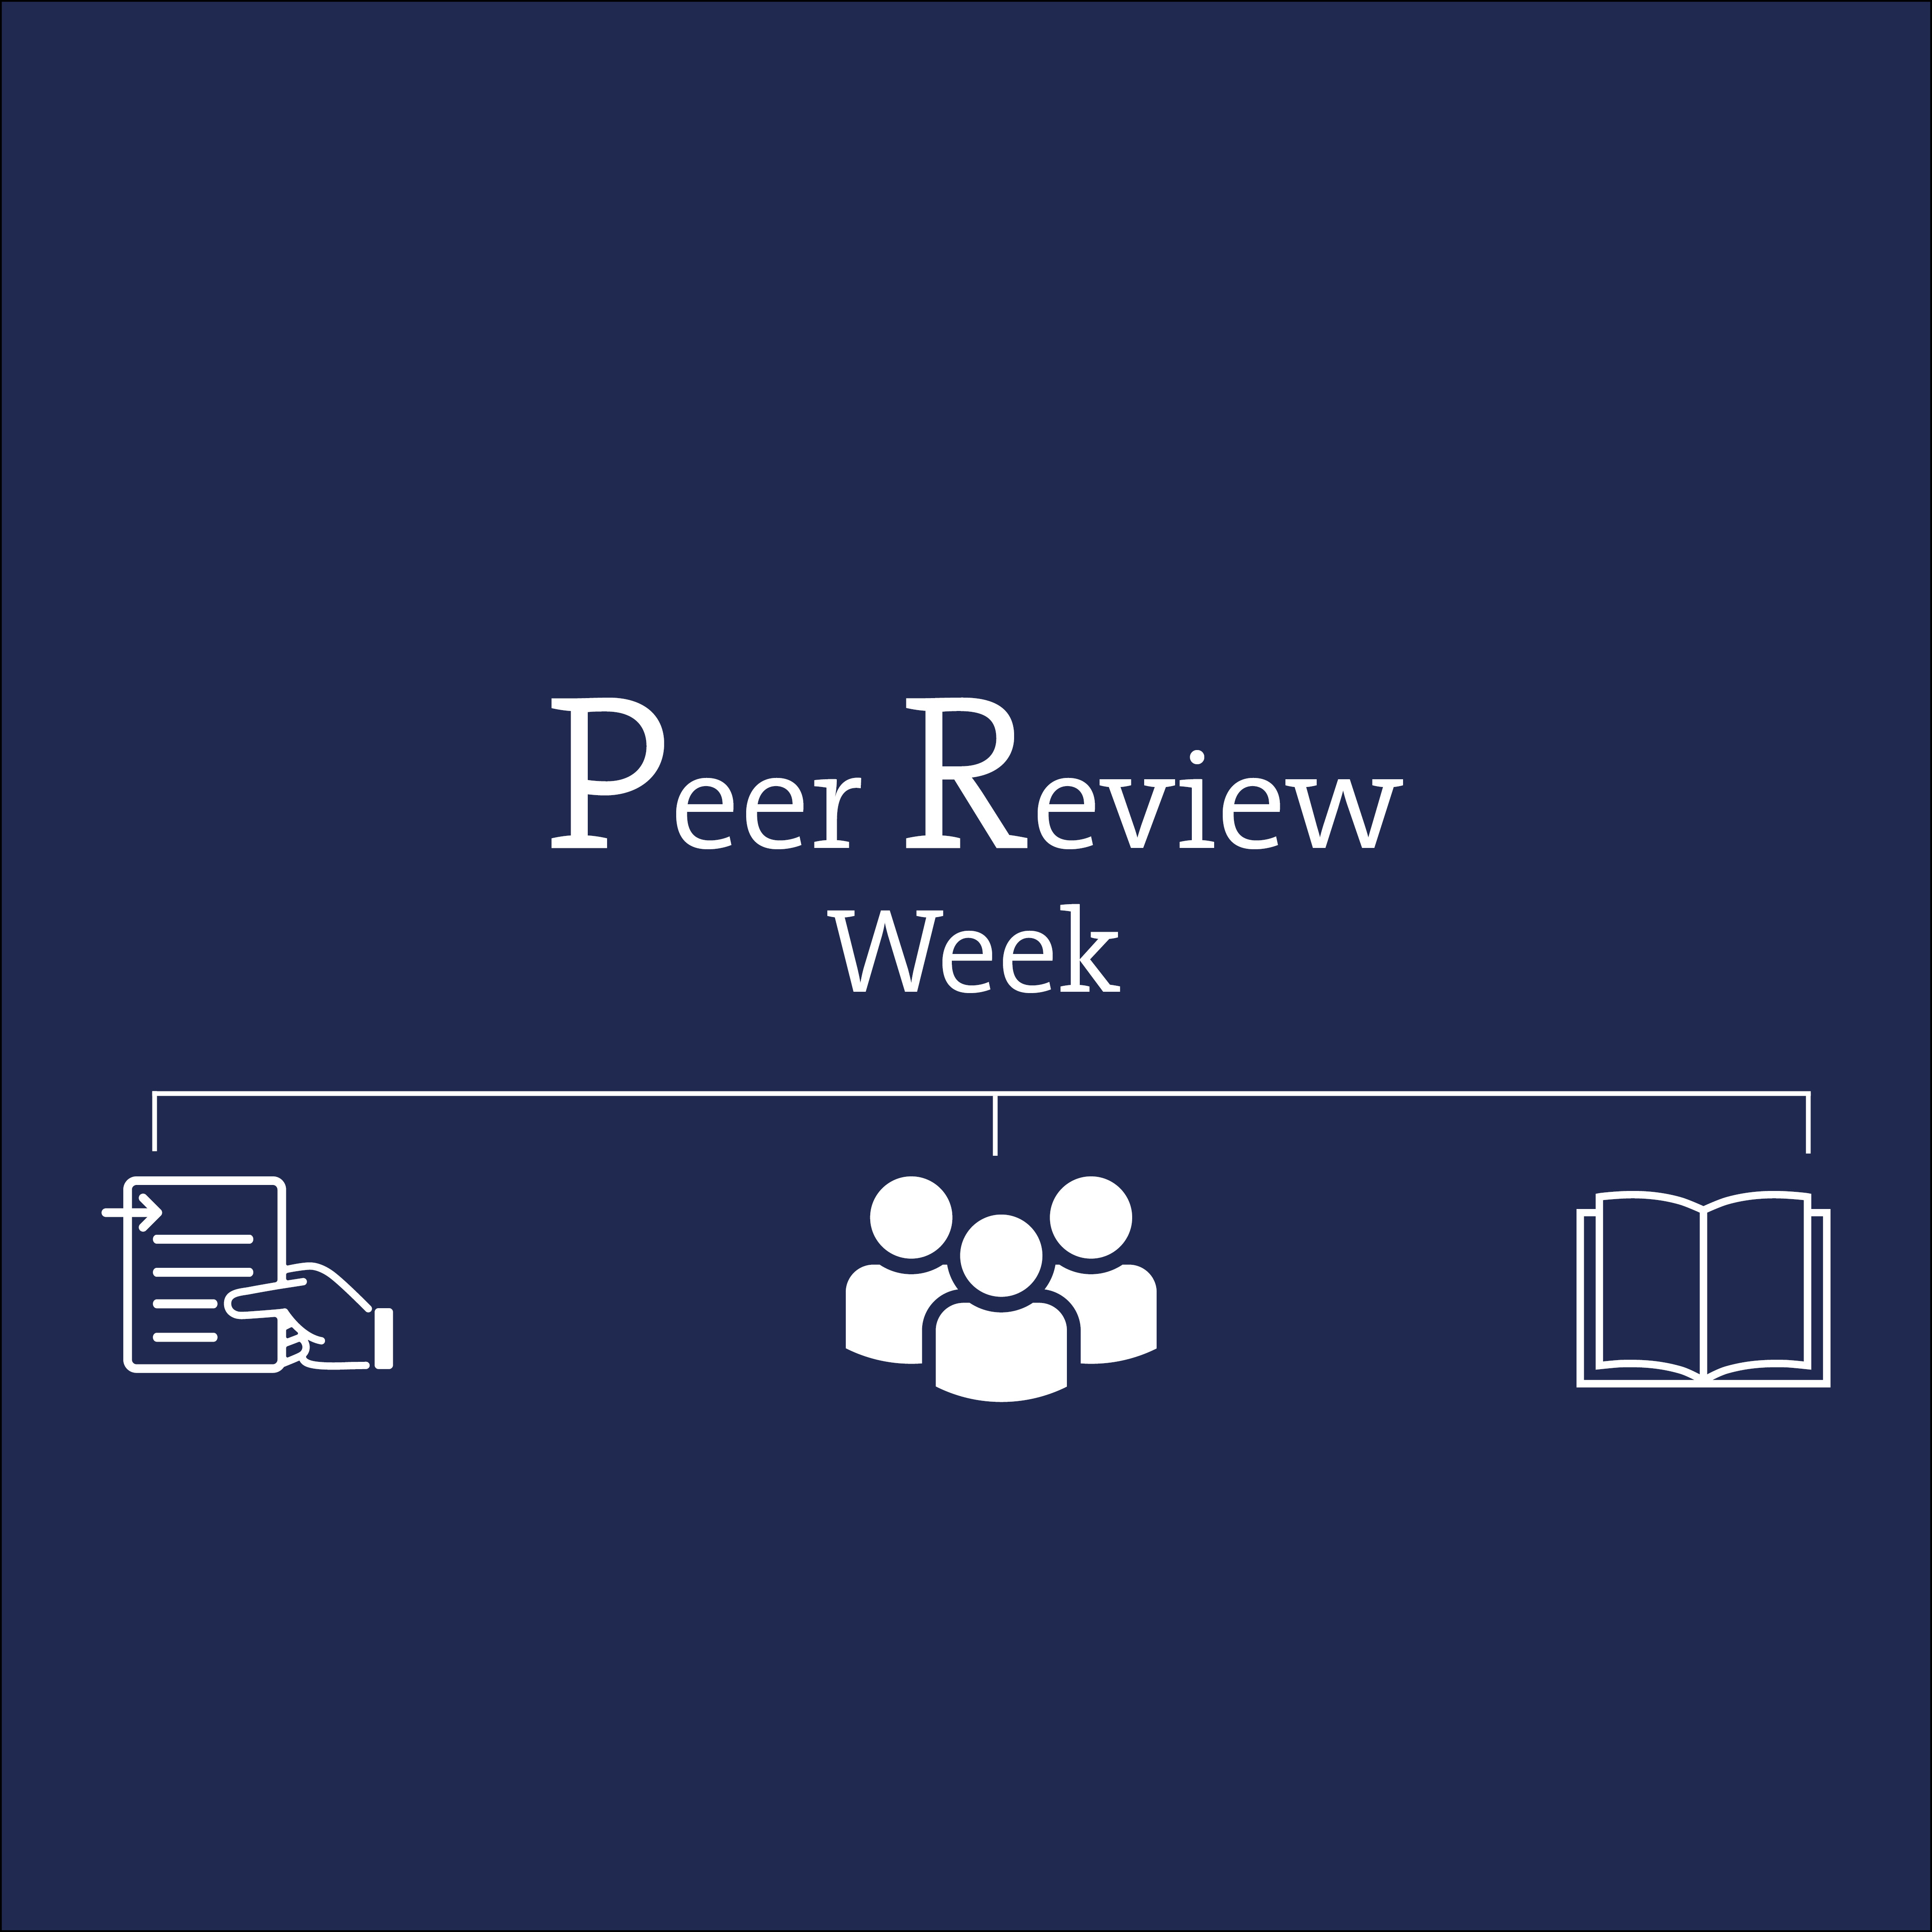 Peer Review 1: Articles and Books